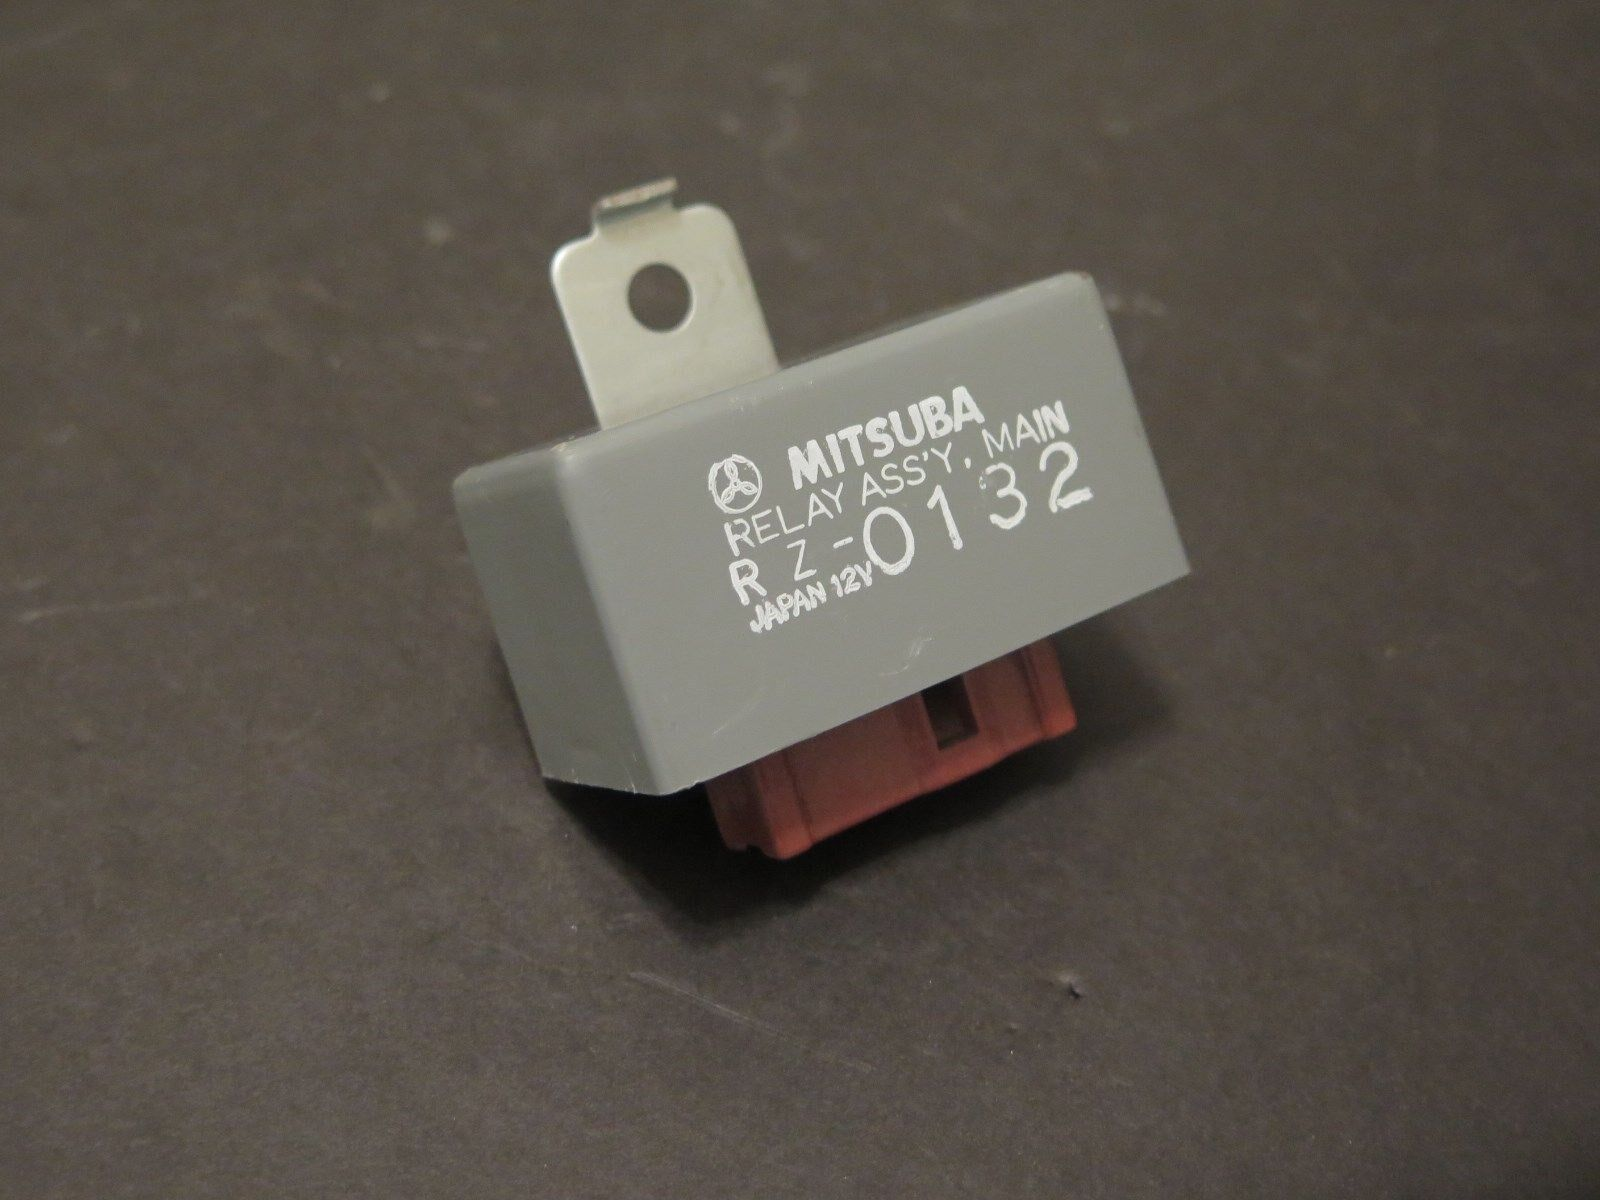 1995 Honda Civic Main Relay - Youre Almost Done Rz Main Relay Eg Honda Civic - 1995 Honda Civic Main Relay